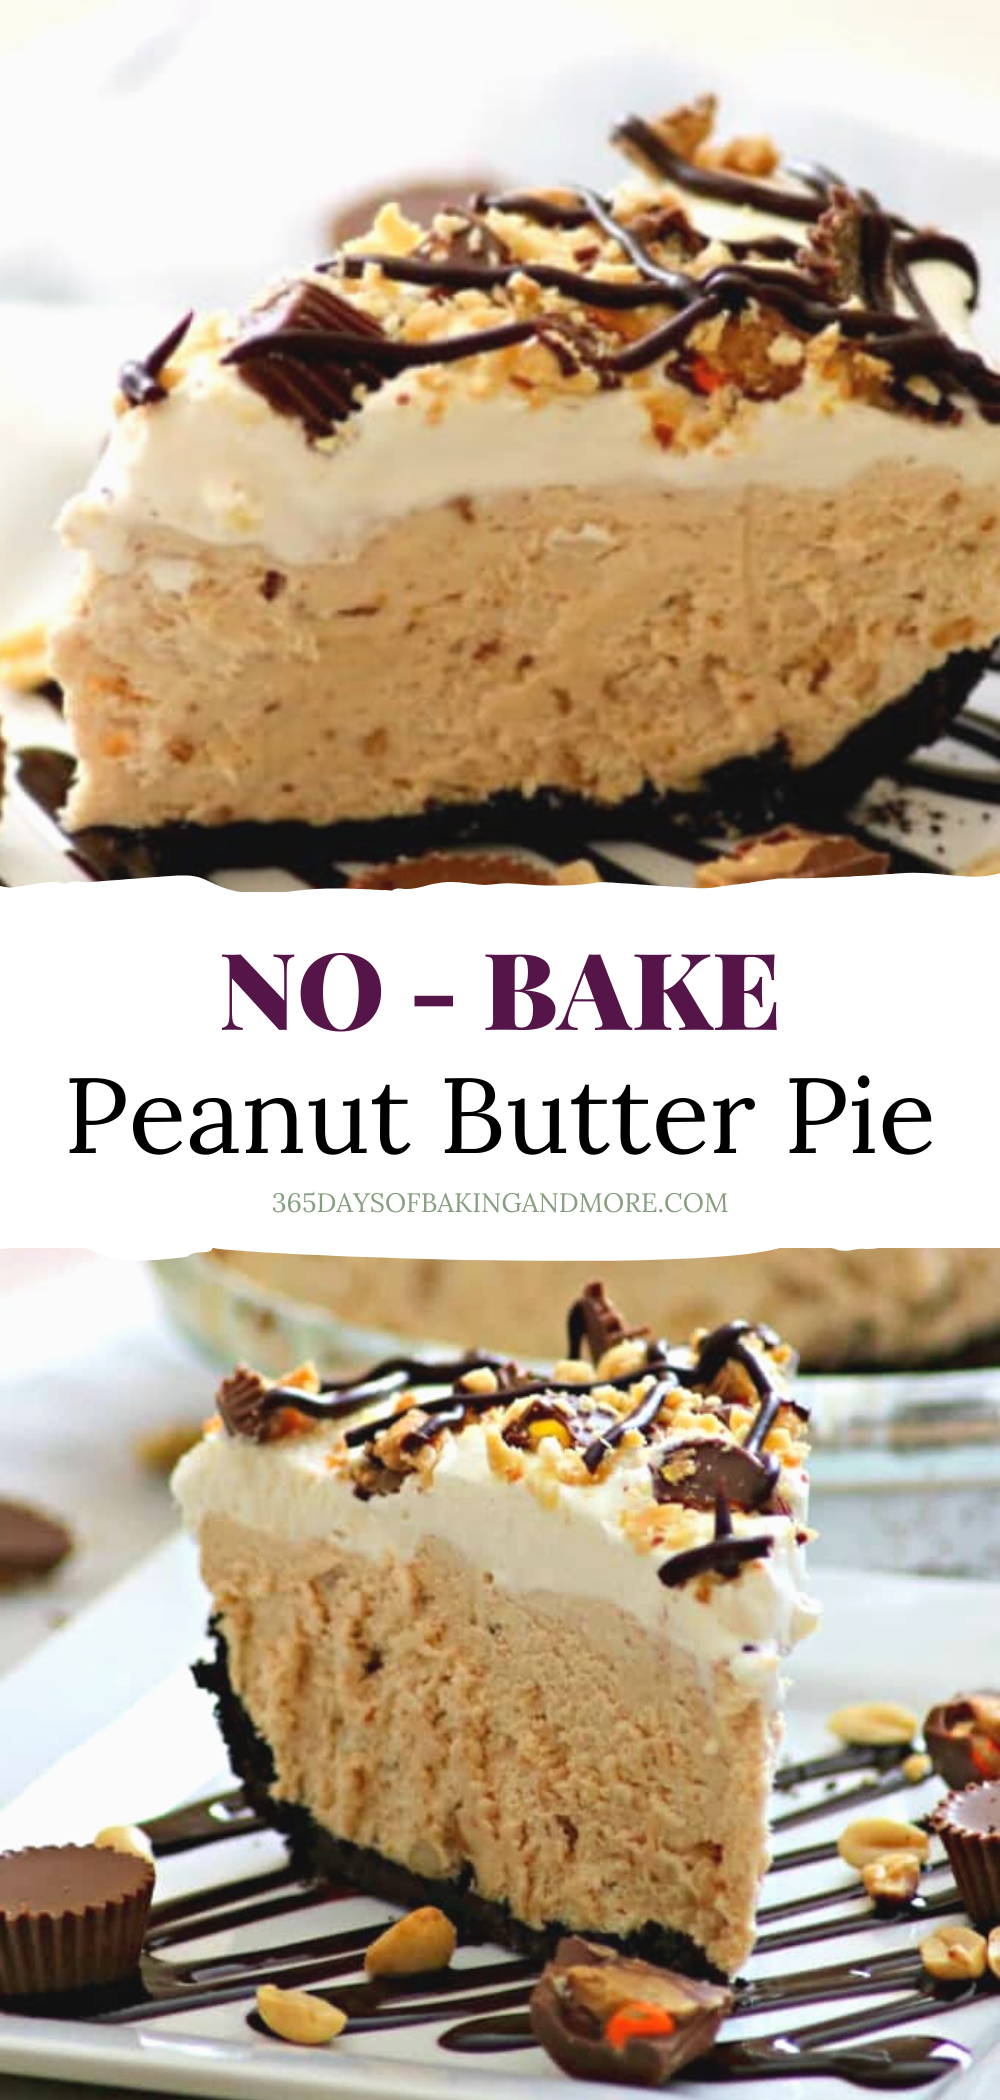 Photo of NO-BAKE Peanut Butter Pie